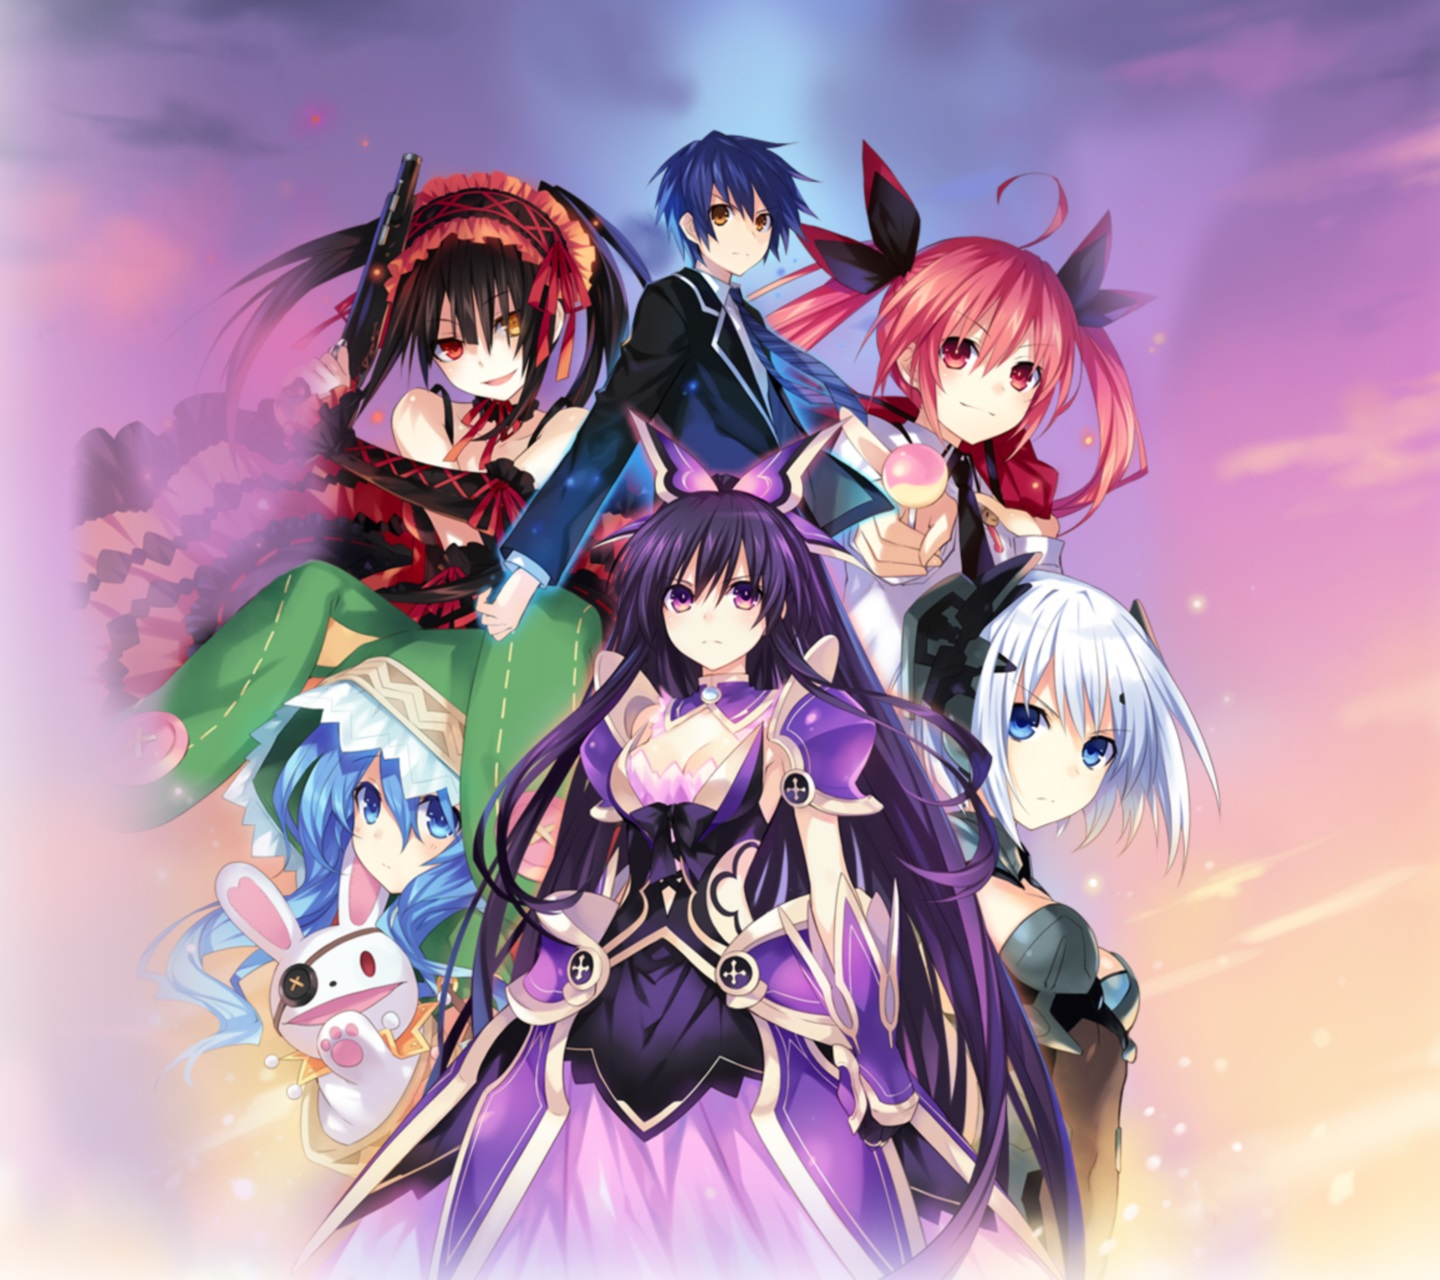 Date A Live.Android wallpaper.1440x1280